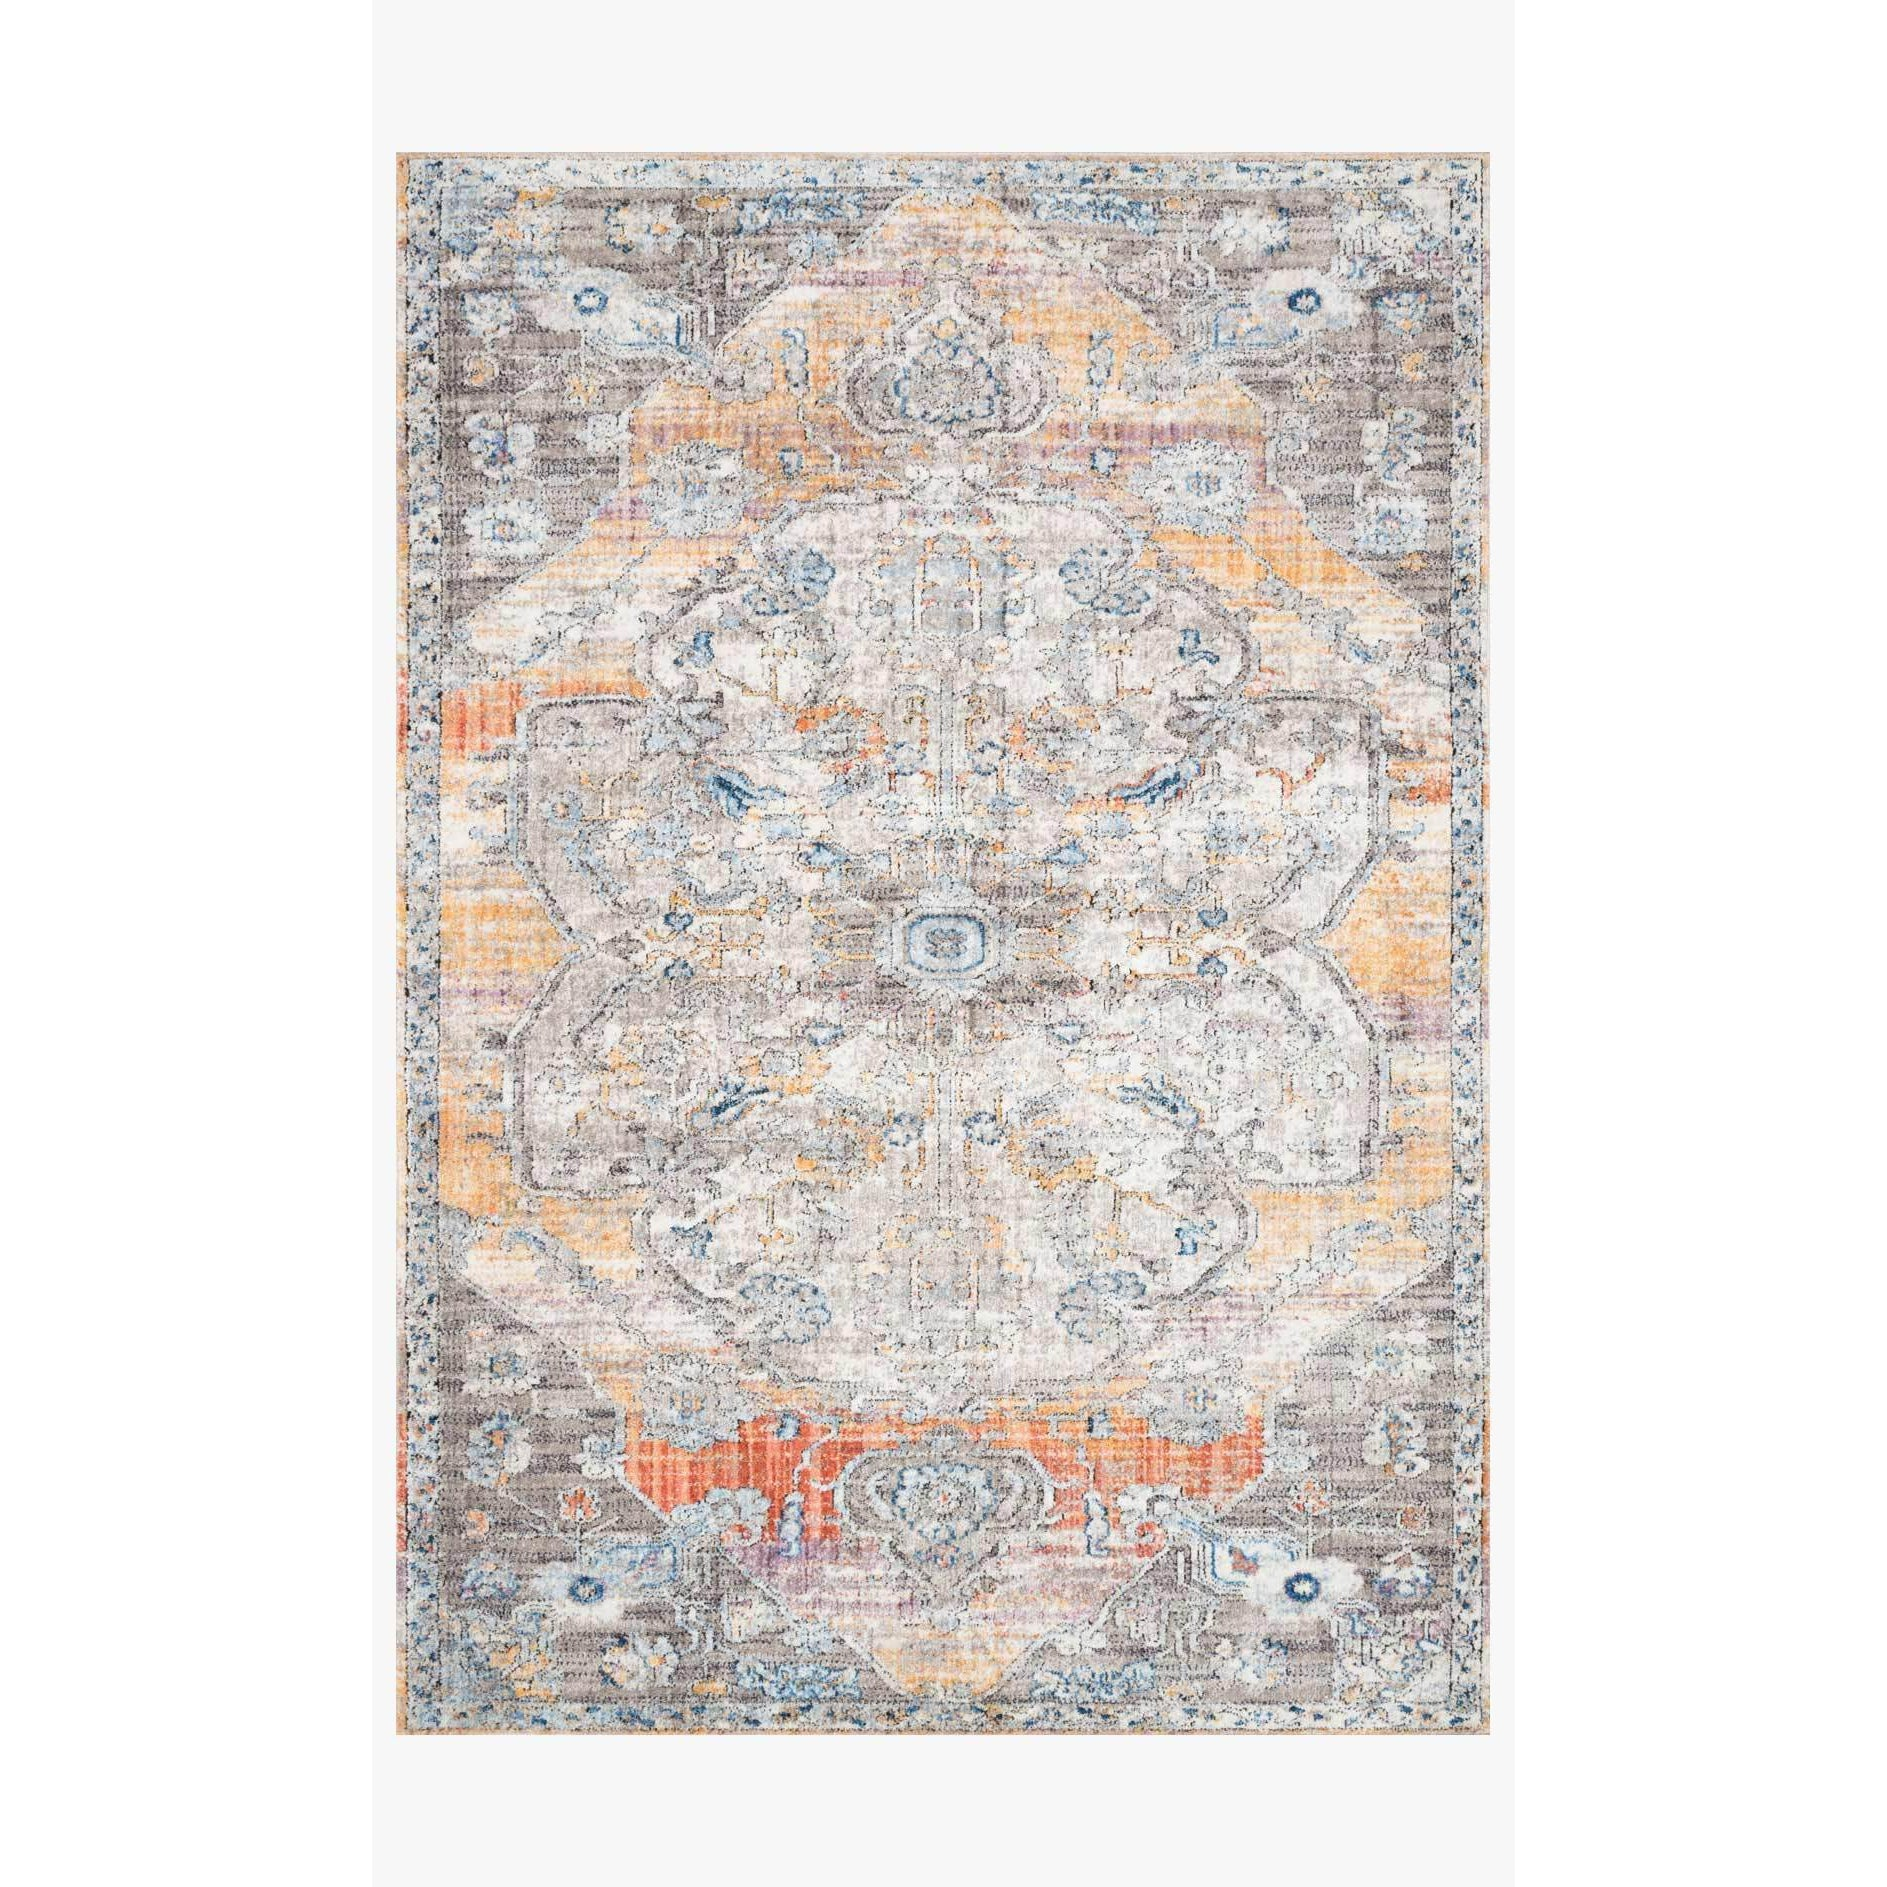 Dante Rugs by Loloi - DN-06 Natural / Sunrise-Loloi Rugs-Blue Hand Home